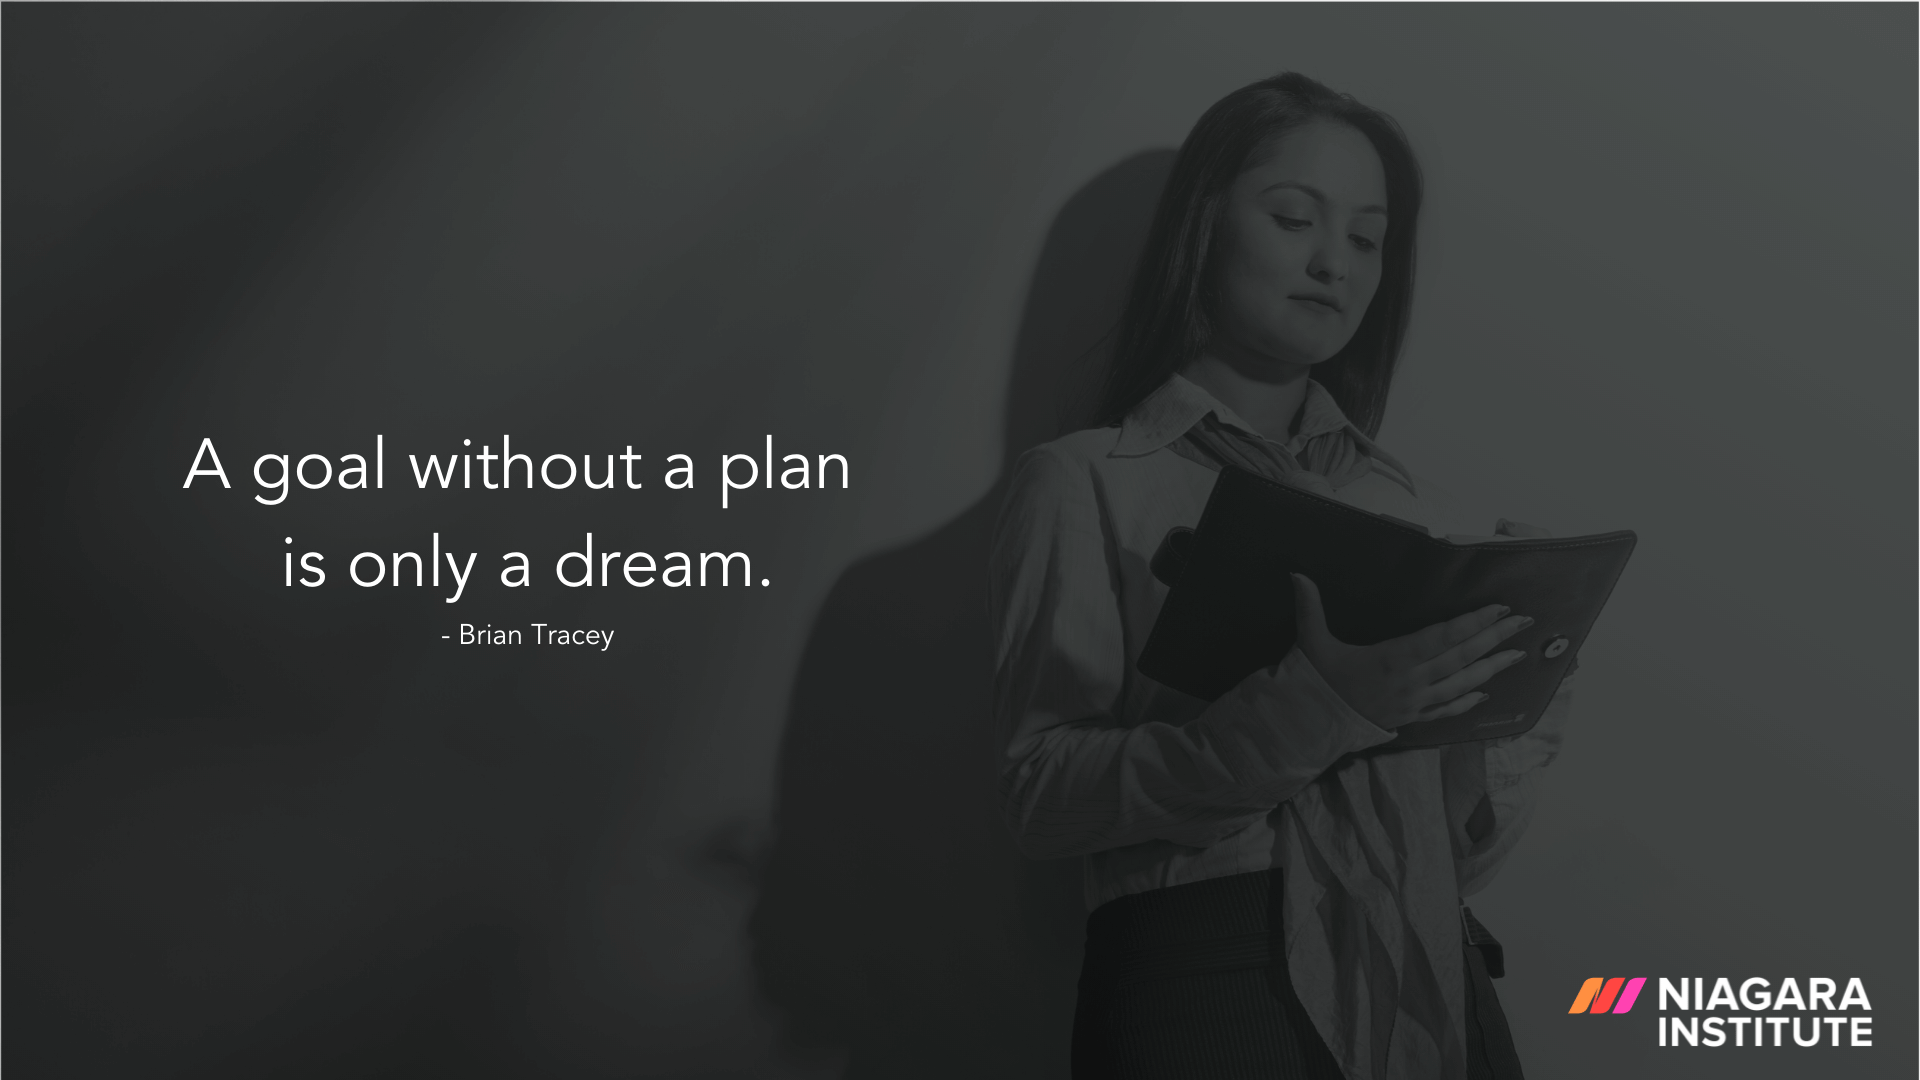 A goal without a plan is only a dream. - Brian Tracy